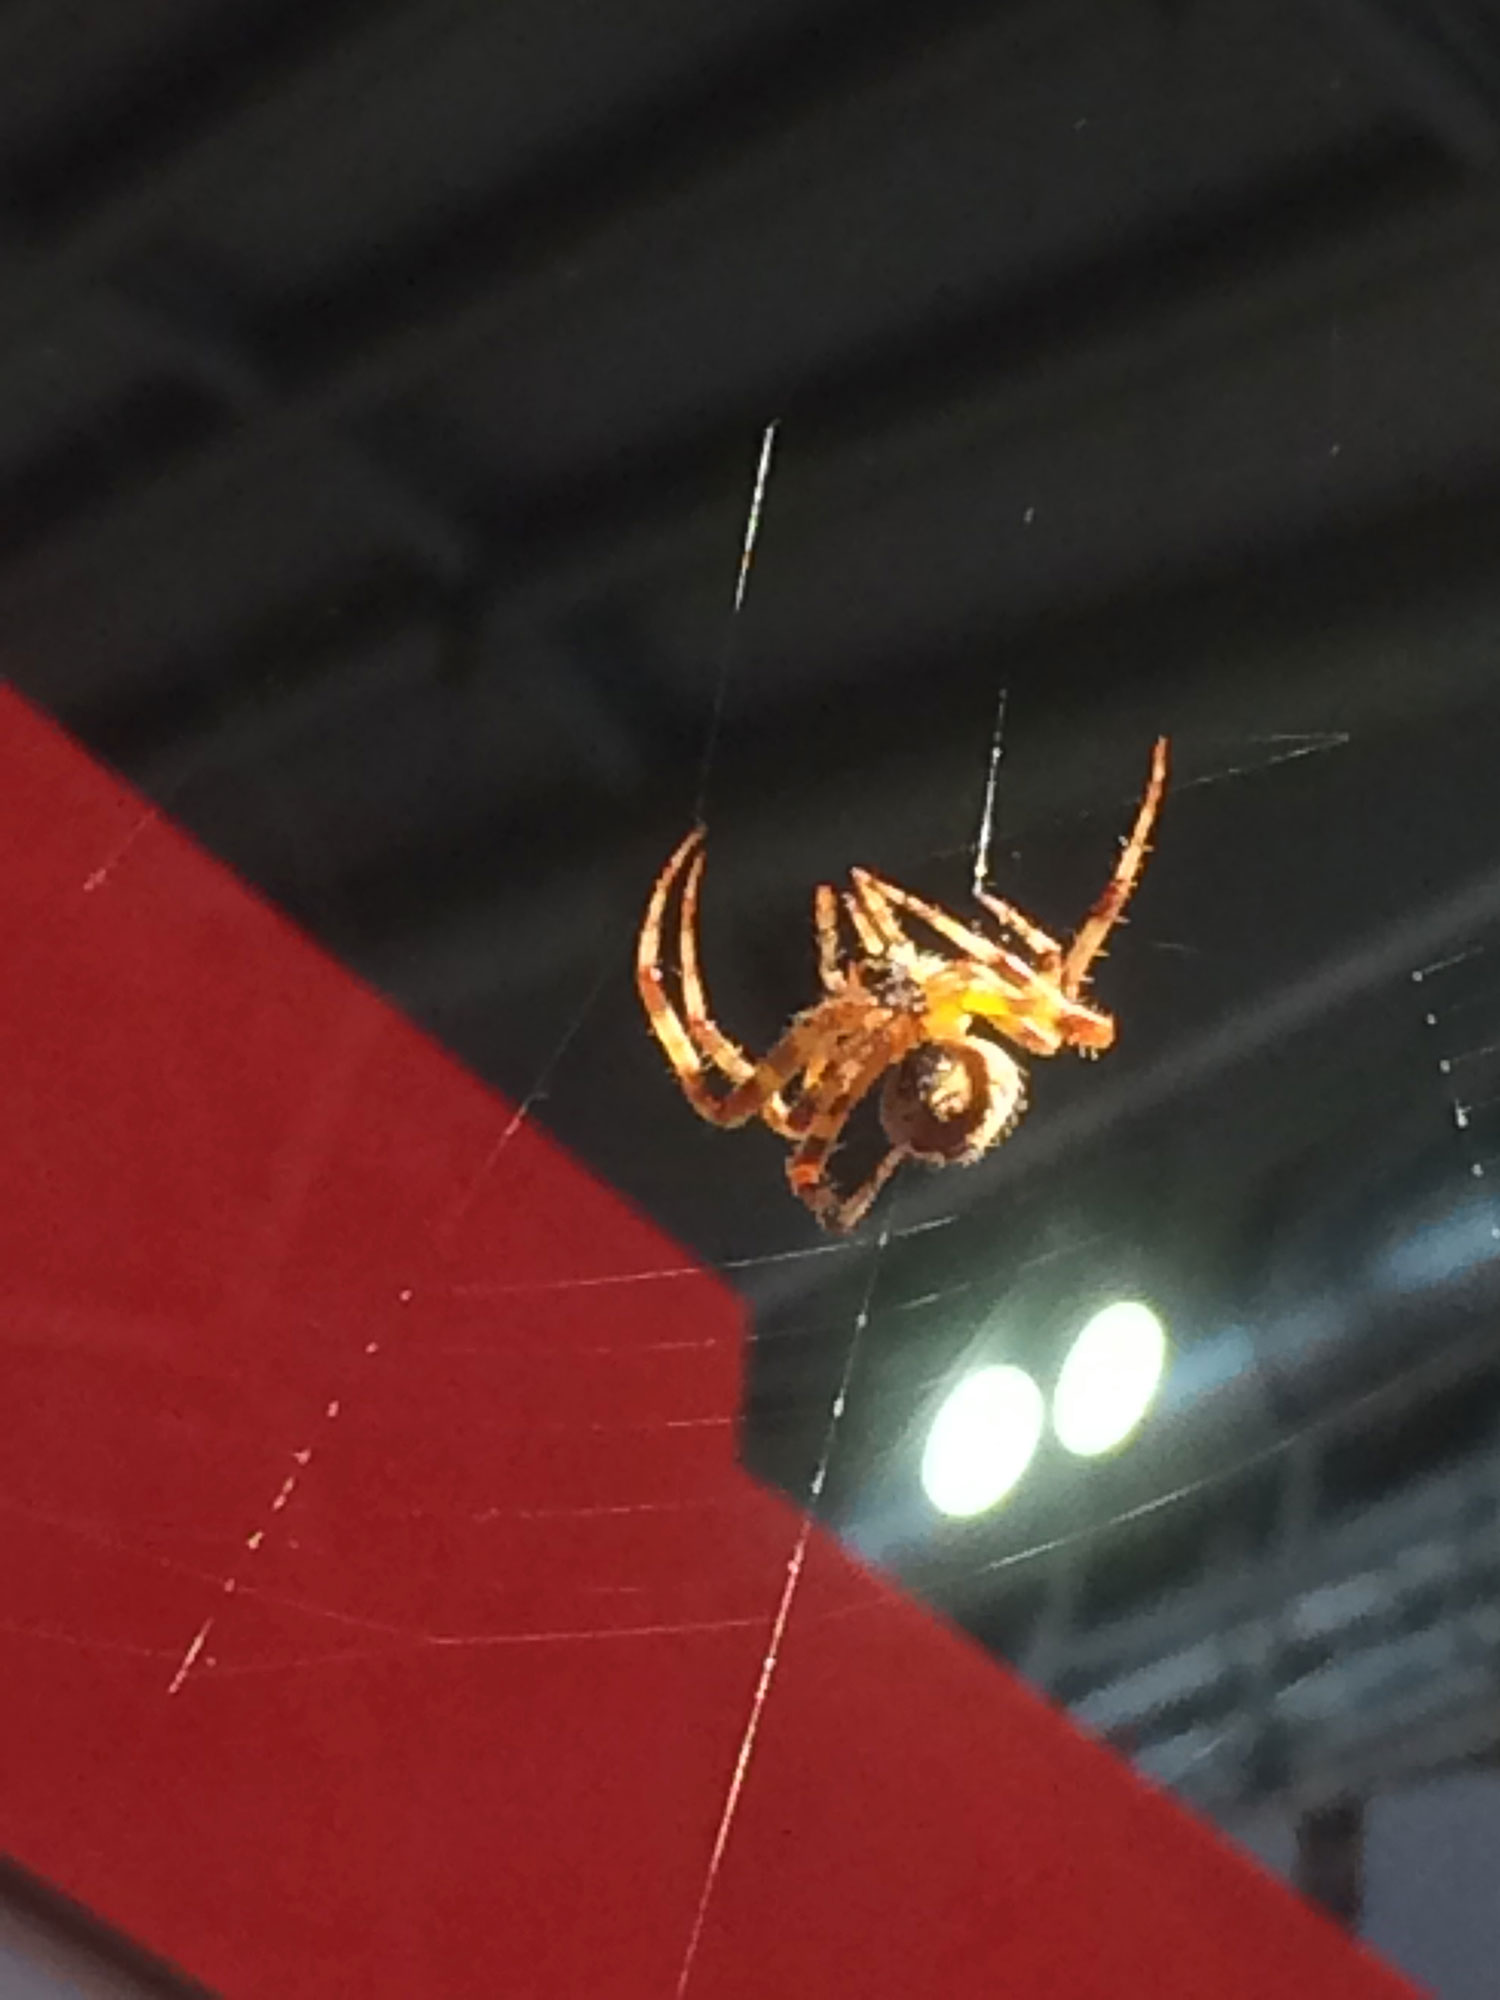 I met this not so little gold and brown striped spider at the entrance of one of the halls. She was definitely a smart spider spinning her web and gaining a view of all the new, fantastic books there were at the Frankfurt Book Fair 2019.